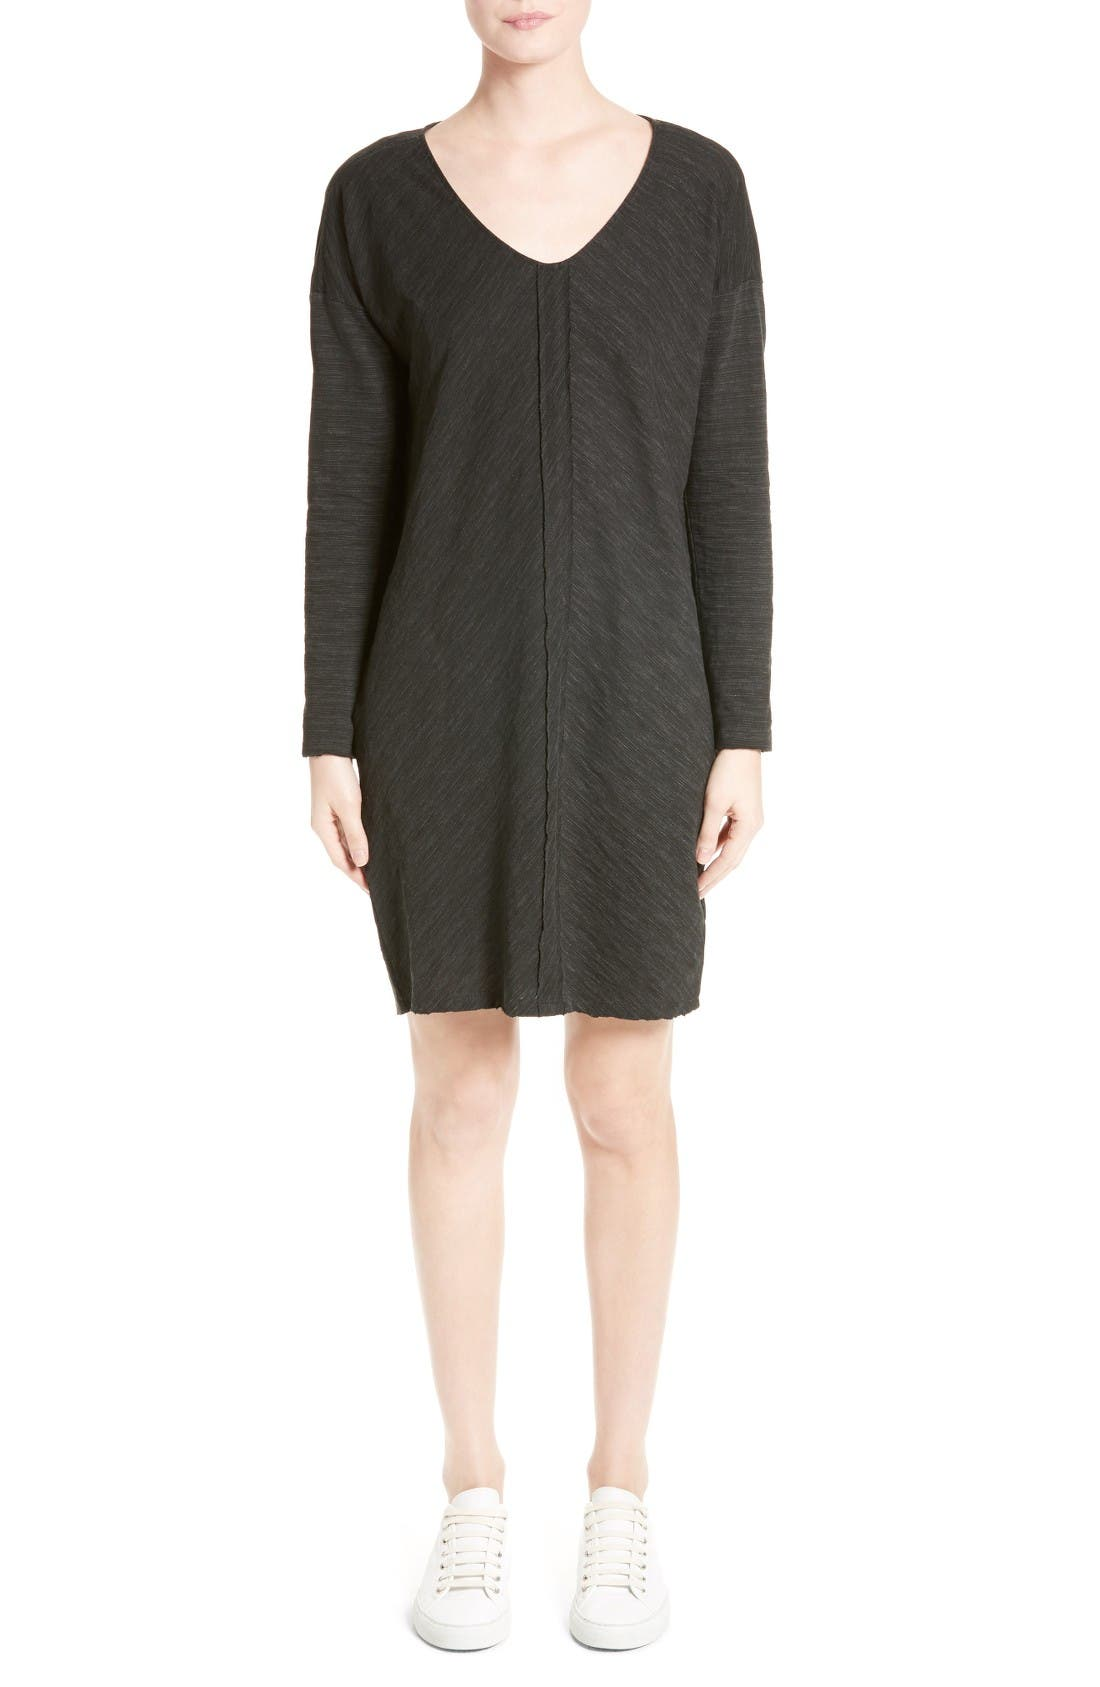 ATM ANTHONY THOMAS MELILLO Textured Shift Dress